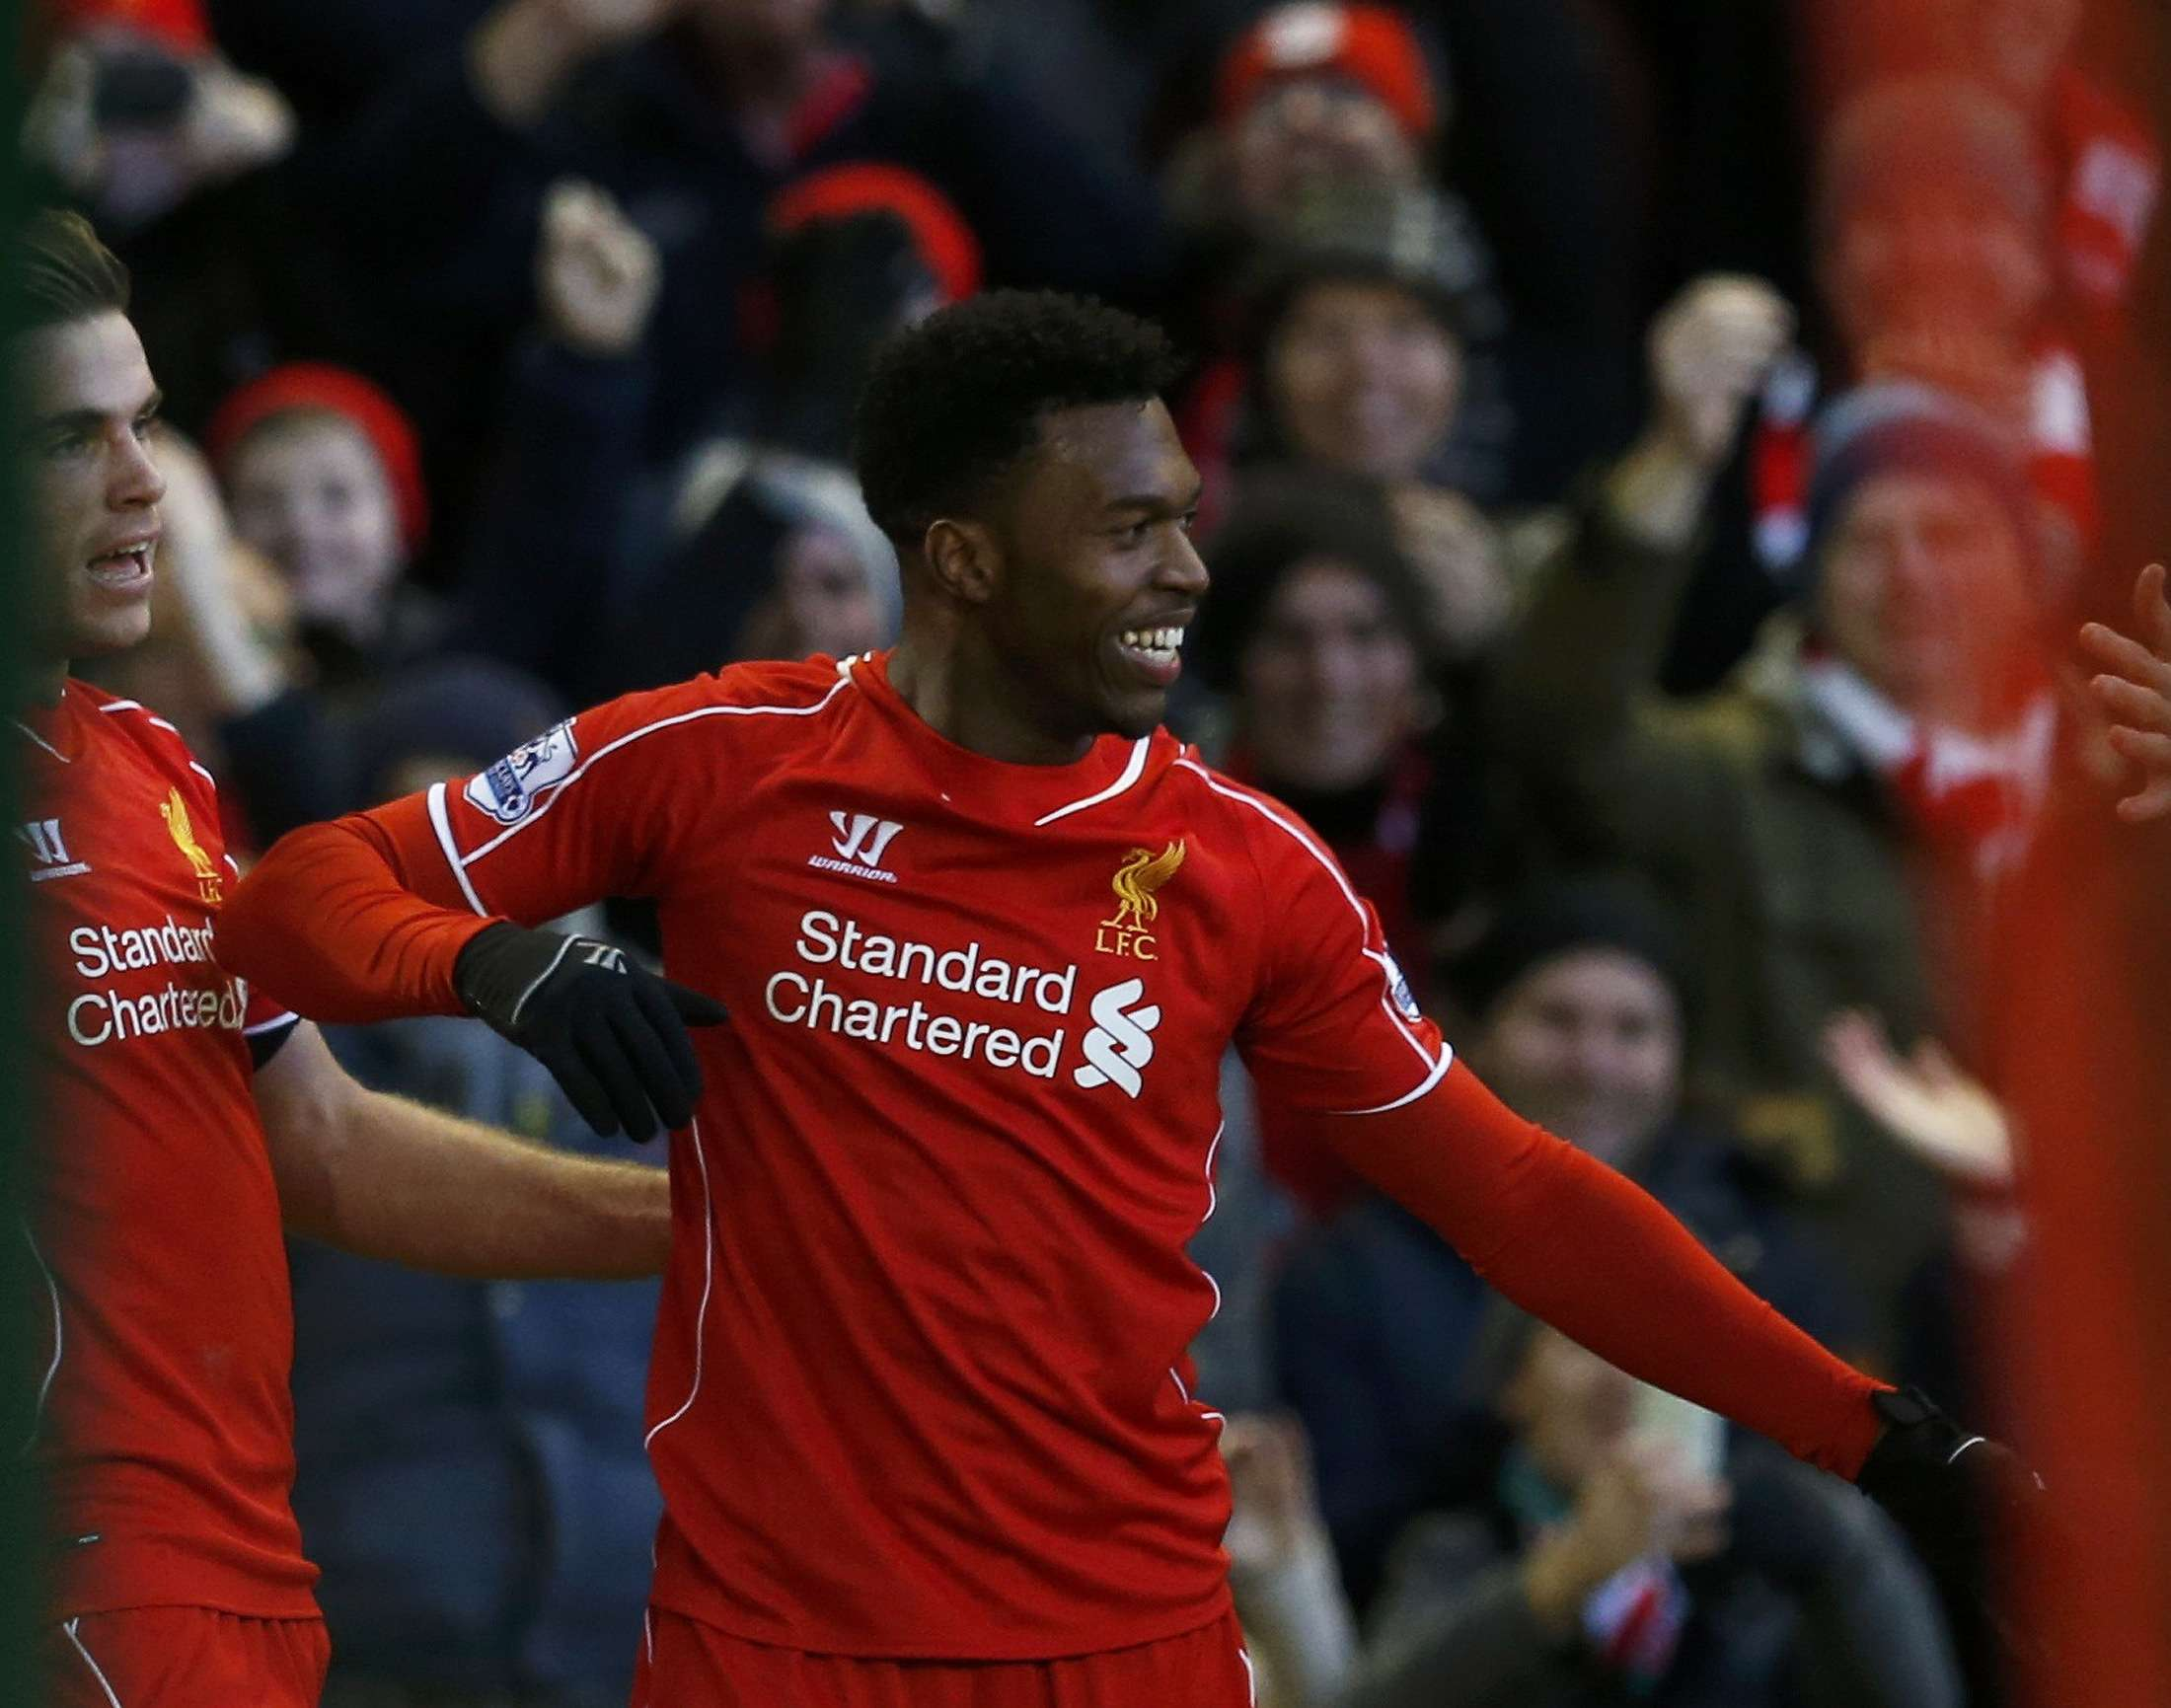 Liverpool's Daniel Sturridge celebrates his goal during their English Premier League soccer match against West Ham United at Anfield in Liverpool, northern England January 31, 2015. REUTERS/Phil Noble (BRITAIN - Tags: SPORT SOCCER) EDITORIAL USE ONLY. NO USE WITH UNAUTHORIZED AUDIO, VIDEO, DATA, FIXTURE LISTS, CLUB/LEAGUE LOGOS OR 'LIVE' SERVICES. ONLINE IN-MATCH USE LIMITED TO 45 IMAGES, NO VIDEO EMULATION. NO USE IN BETTING, GAMES OR SINGLE CLUB/LEAGUE/PLAYER PUBLICATIONS.FOR EDITORIAL USE ONLY. NOT FOR SALE FOR MARKETING OR ADVERTISING CAMPAIGNS. Foto: PHIL NOBLE/REUTERS